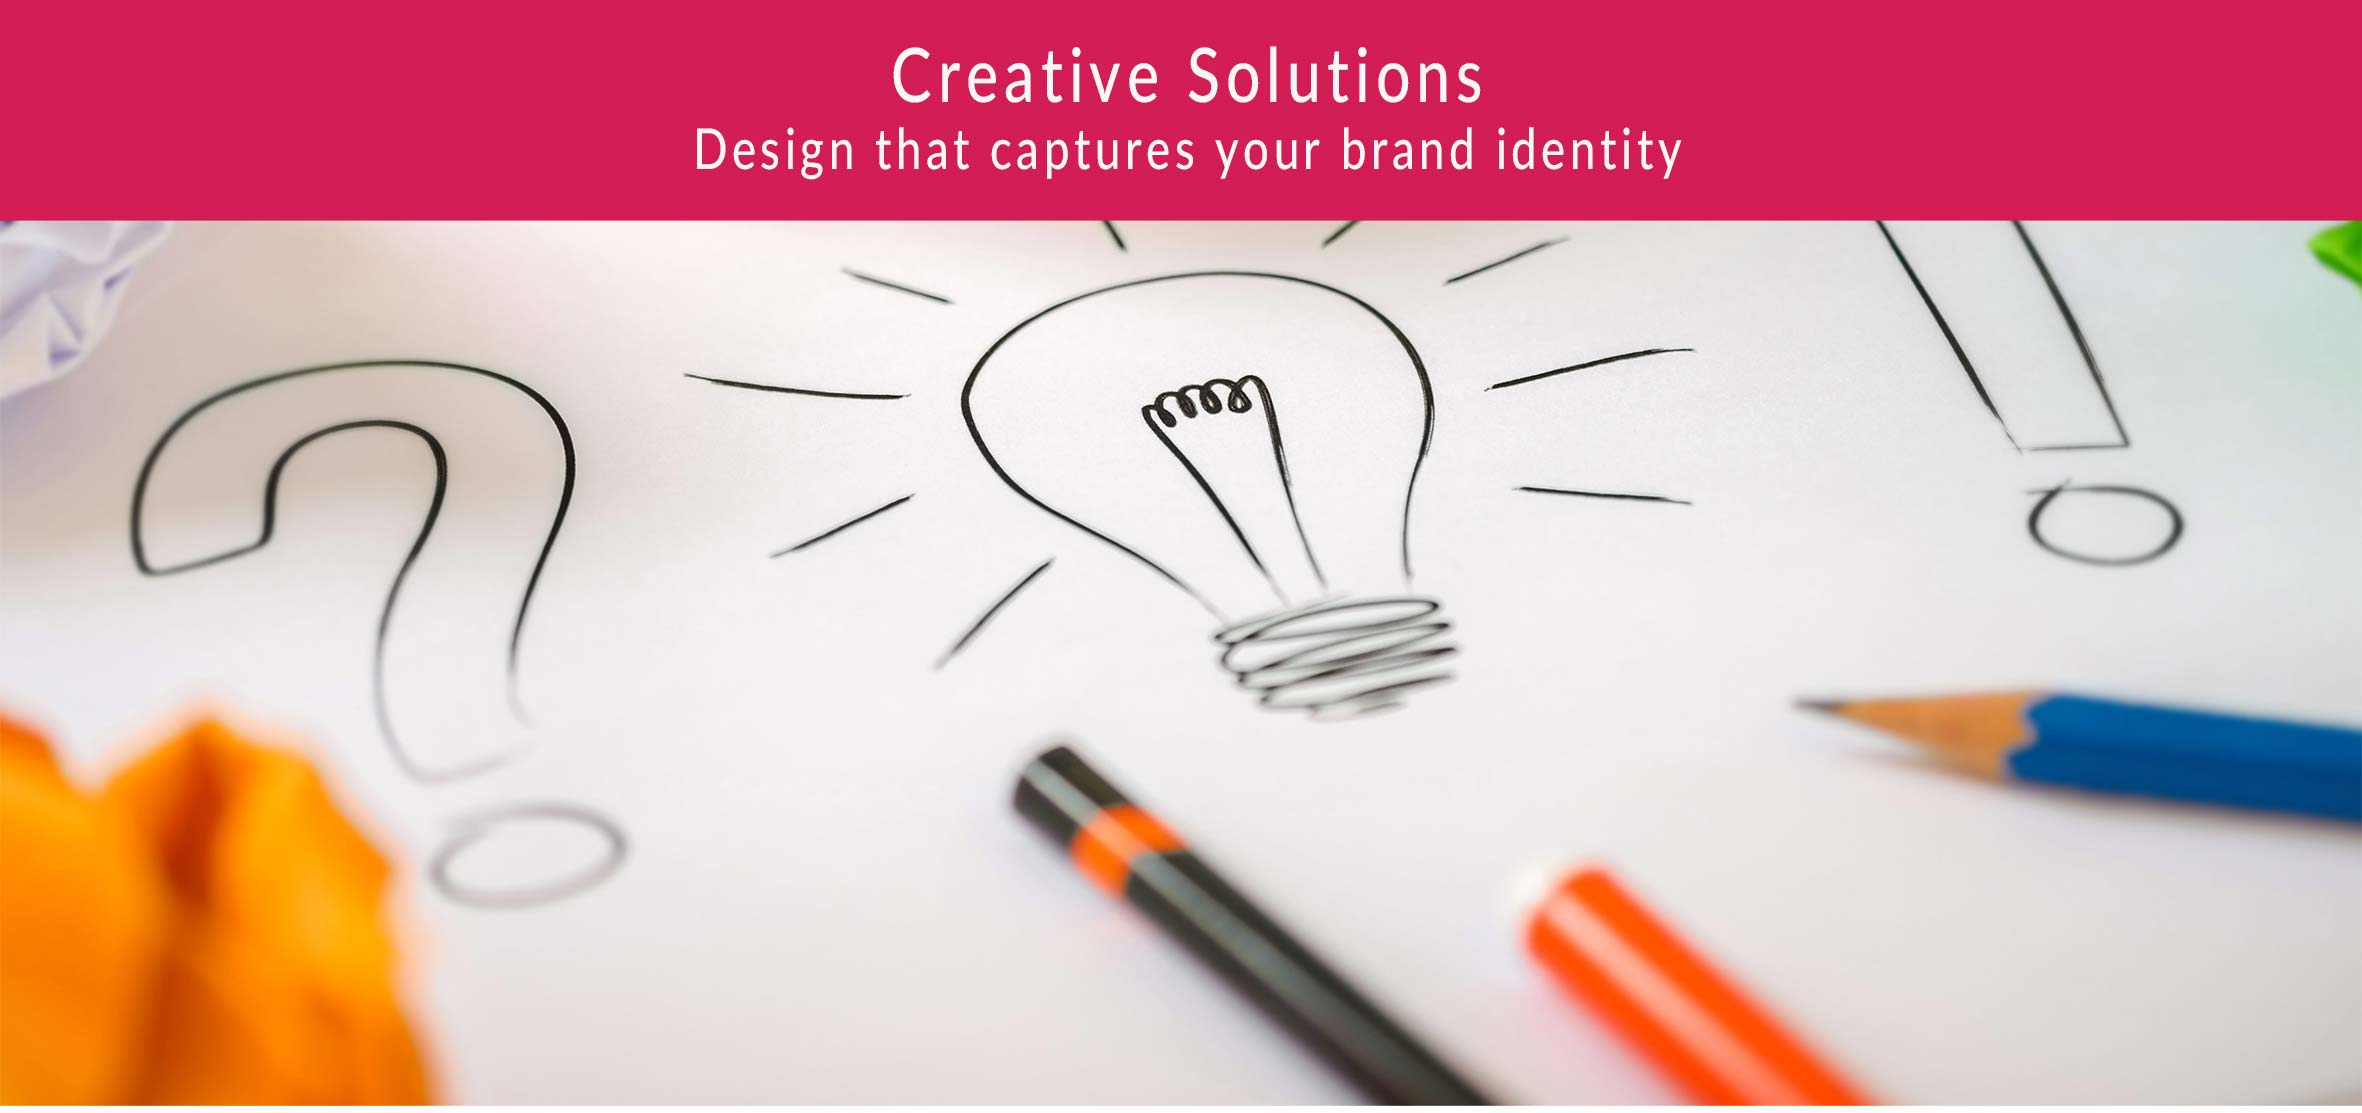 Design that captures your brand identity